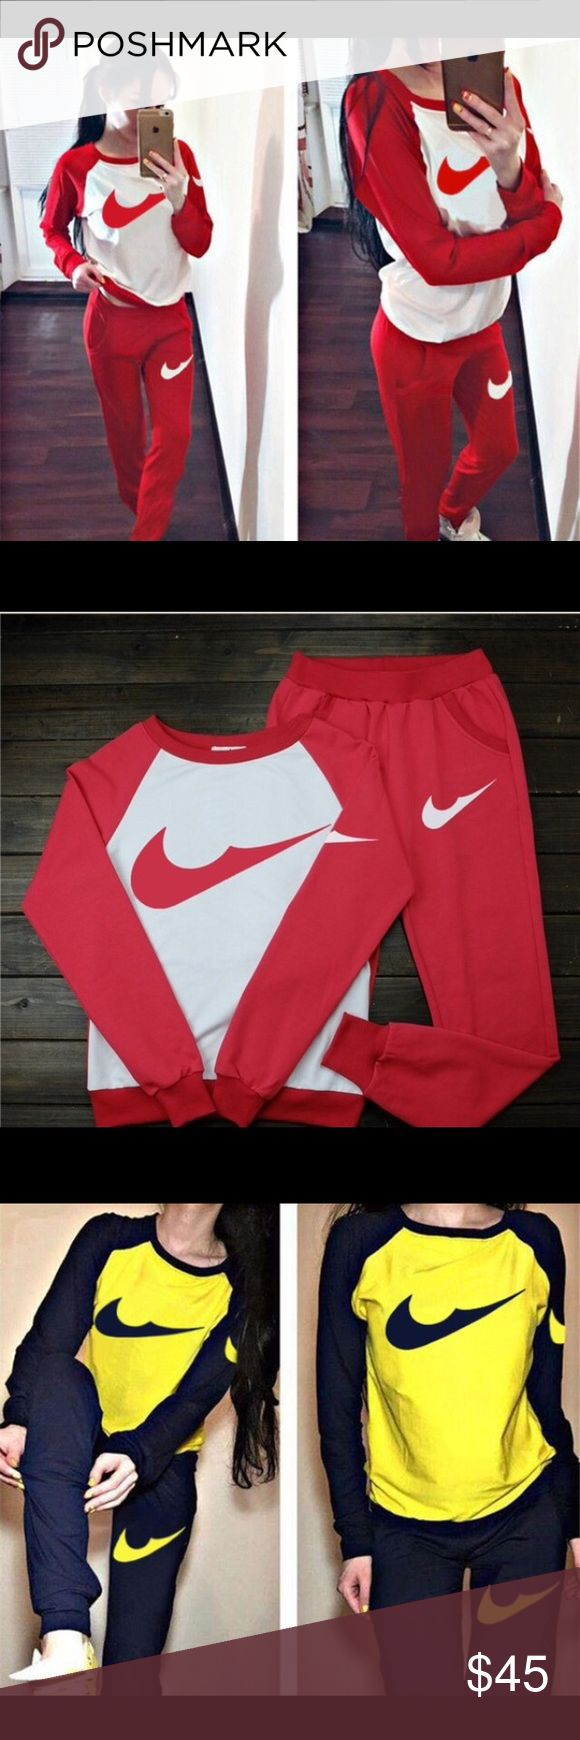 Nike Jogging Suits For Women Brand New Fits Great Hmu For Sizes Other